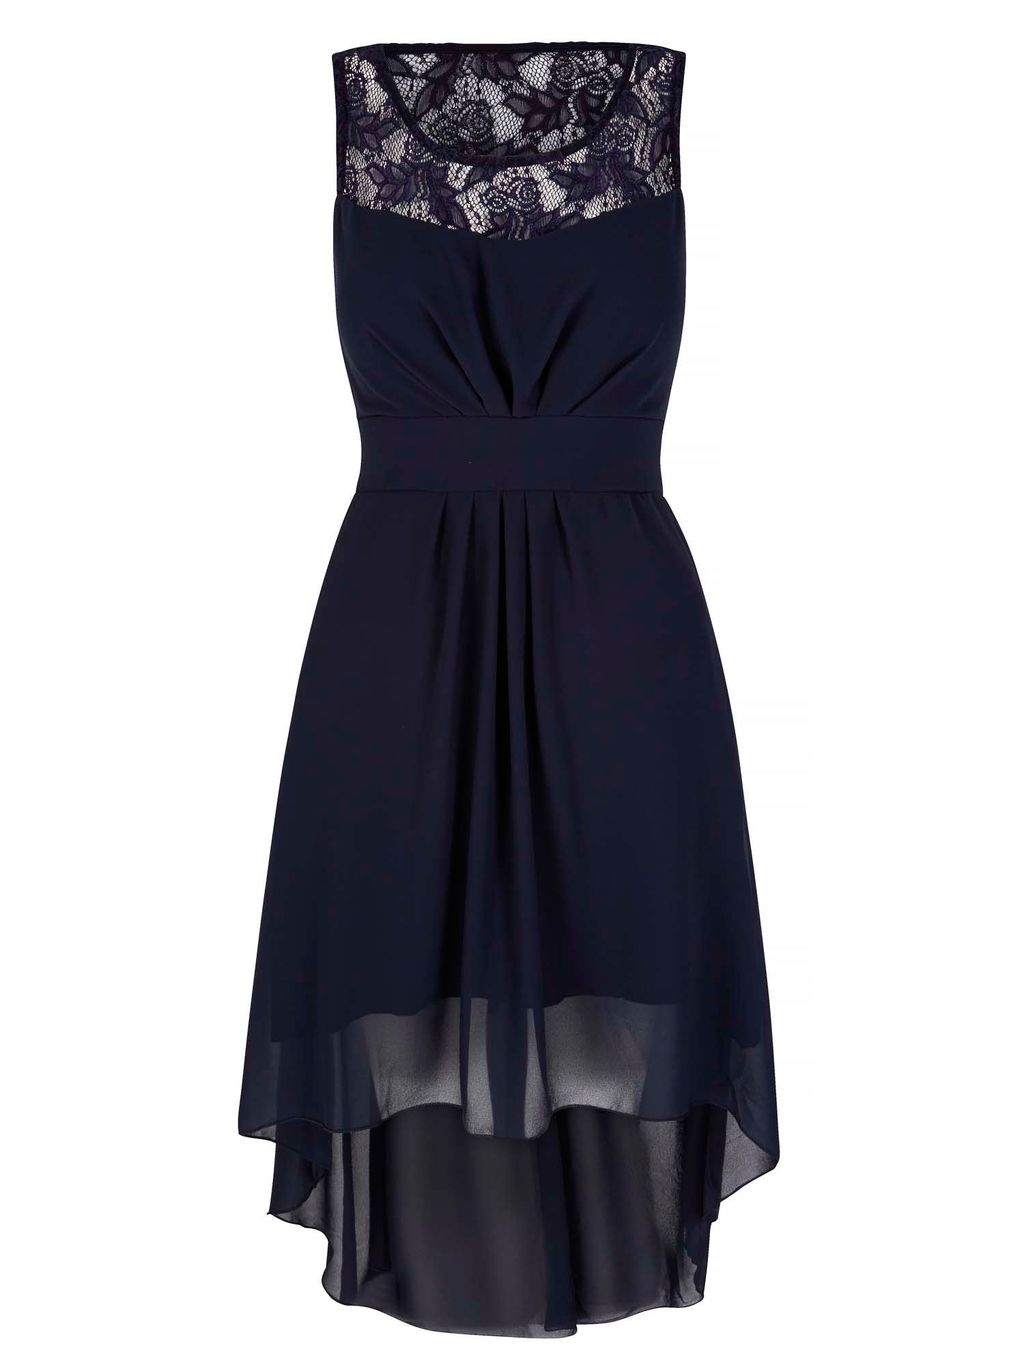 Lace Neckline High Low Dress, Navy - pattern: plain; sleeve style: sleeveless; waist detail: fitted waist; bust detail: ruching/gathering/draping/layers/pintuck pleats at bust; predominant colour: navy; occasions: evening, occasion; length: just above the knee; fit: fitted at waist & bust; style: asymmetric (hem); neckline: scoop; fibres: polyester/polyamide - 100%; hip detail: soft pleats at hip/draping at hip/flared at hip; sleeve length: sleeveless; texture group: sheer fabrics/chiffon/organza etc.; pattern type: fabric; embellishment: lace; shoulder detail: sheer at shoulder; season: s/s 2016; wardrobe: event